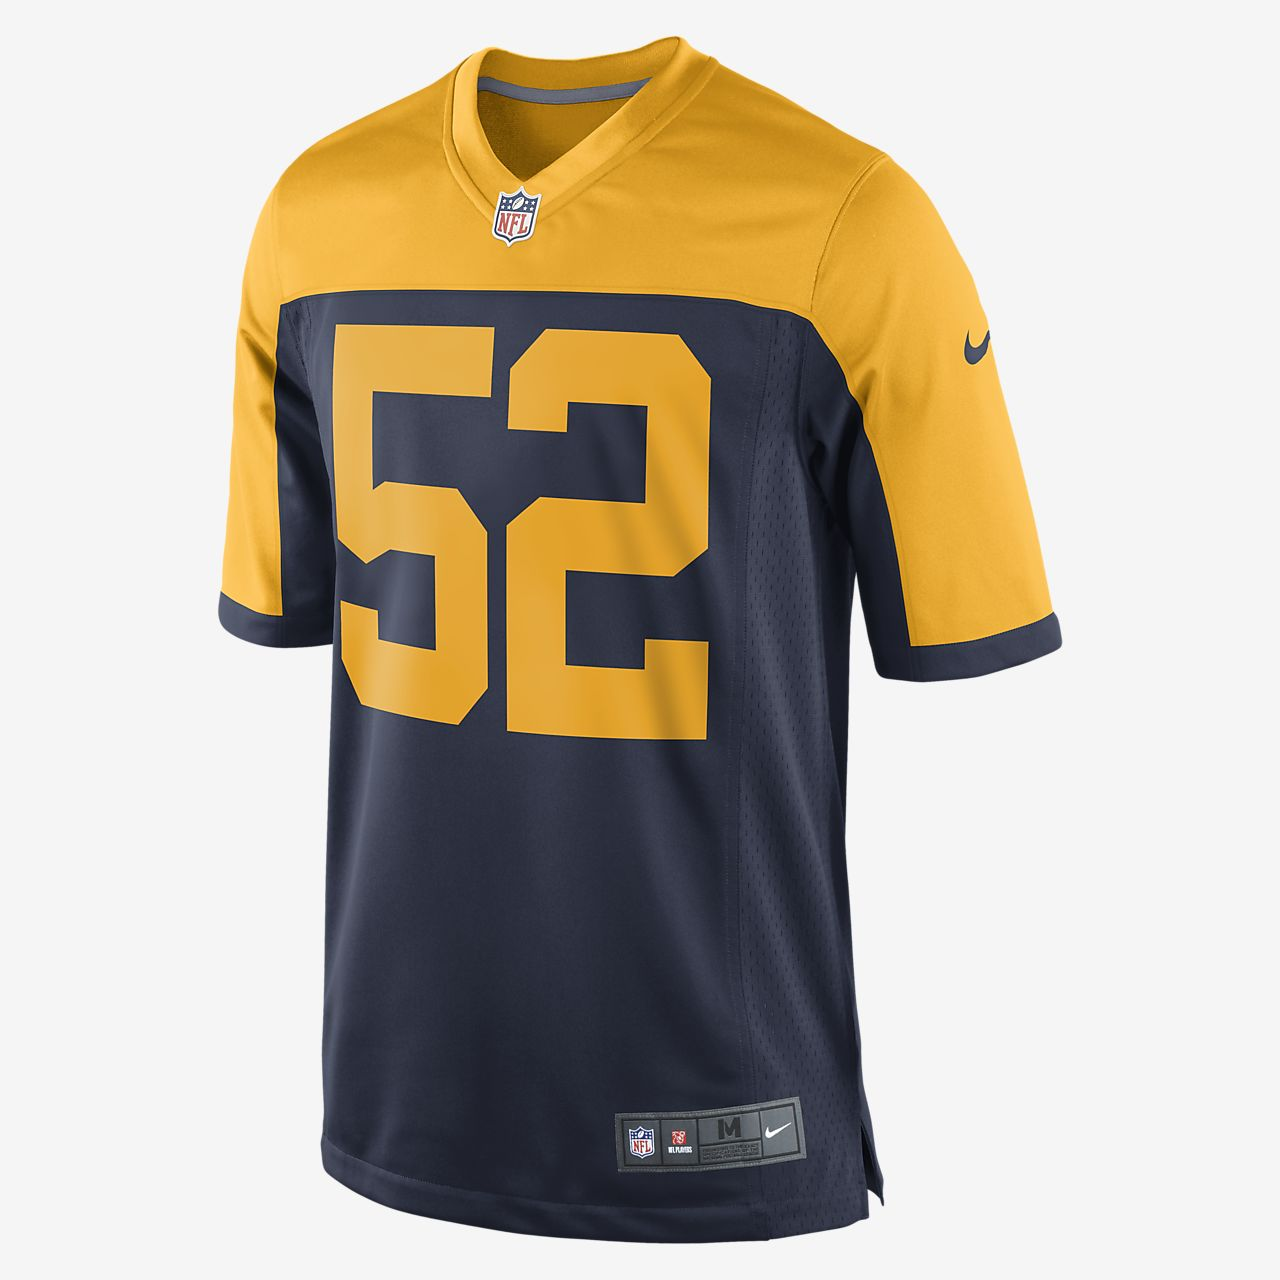 39f09bced NFL Green Bay Packers (Clay Matthews) Men s Football Home Game ...